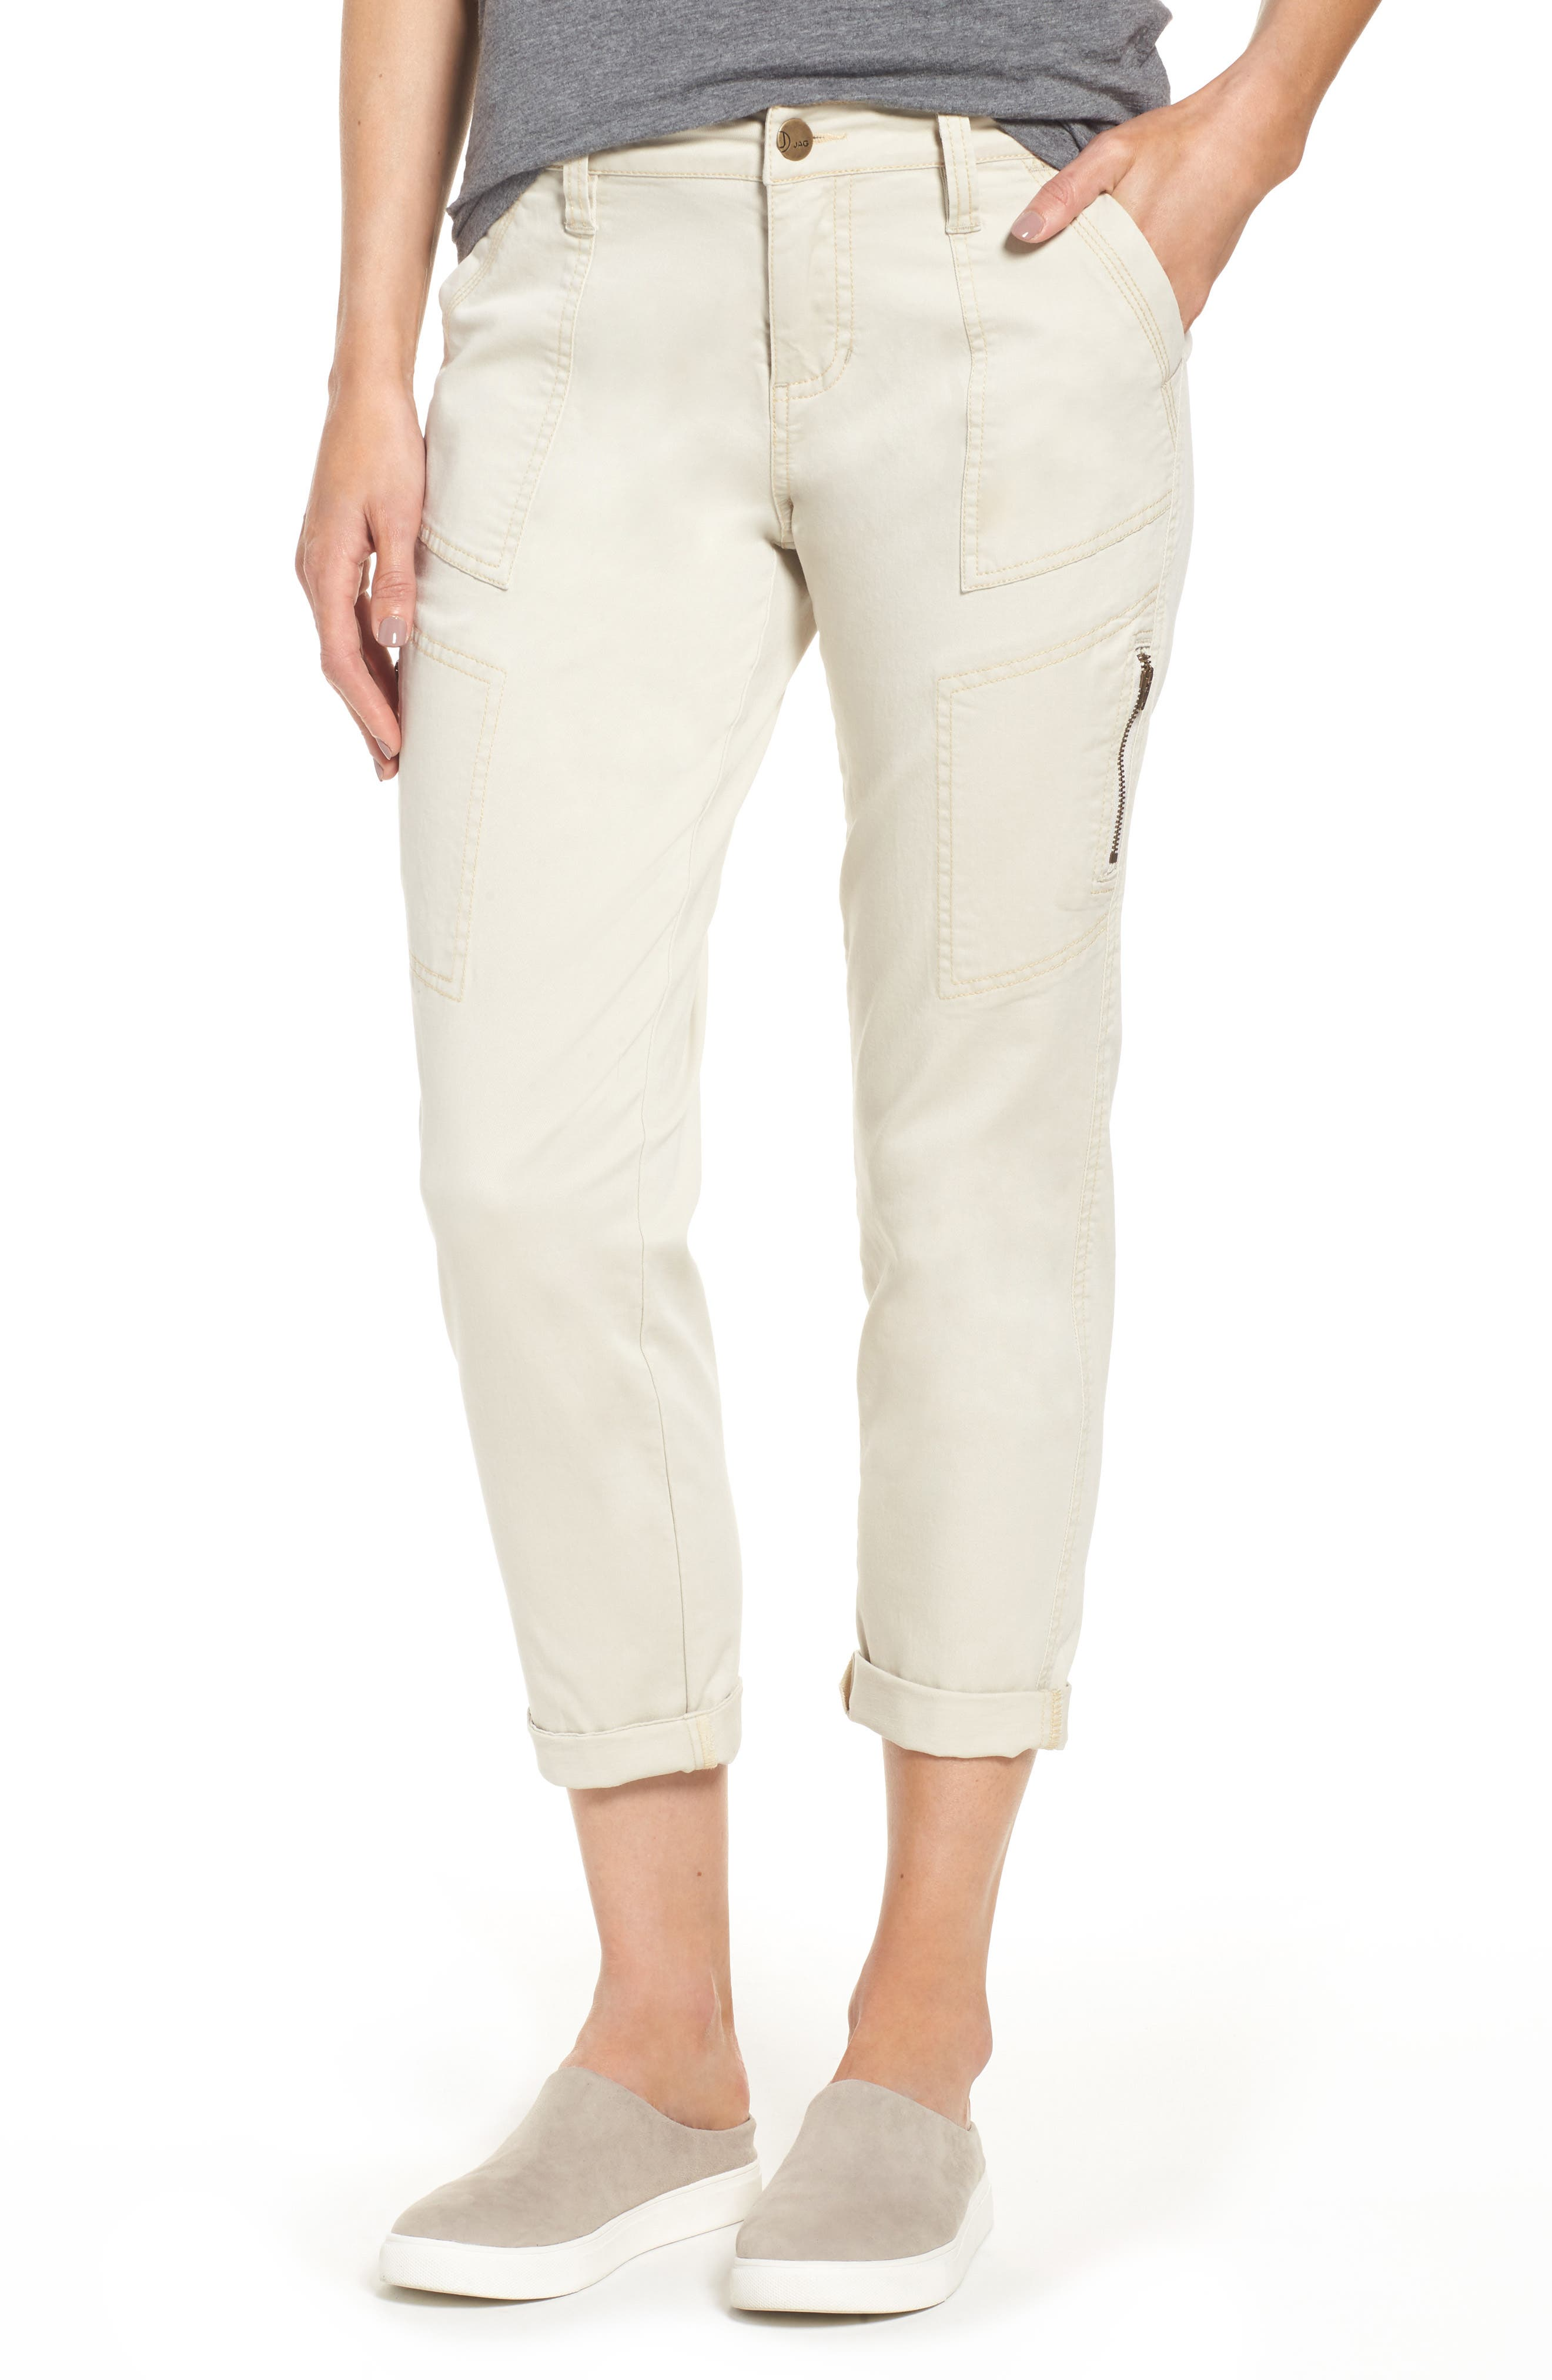 Main Image - Jag Jeans Gable Stretch Twill Utility Pants